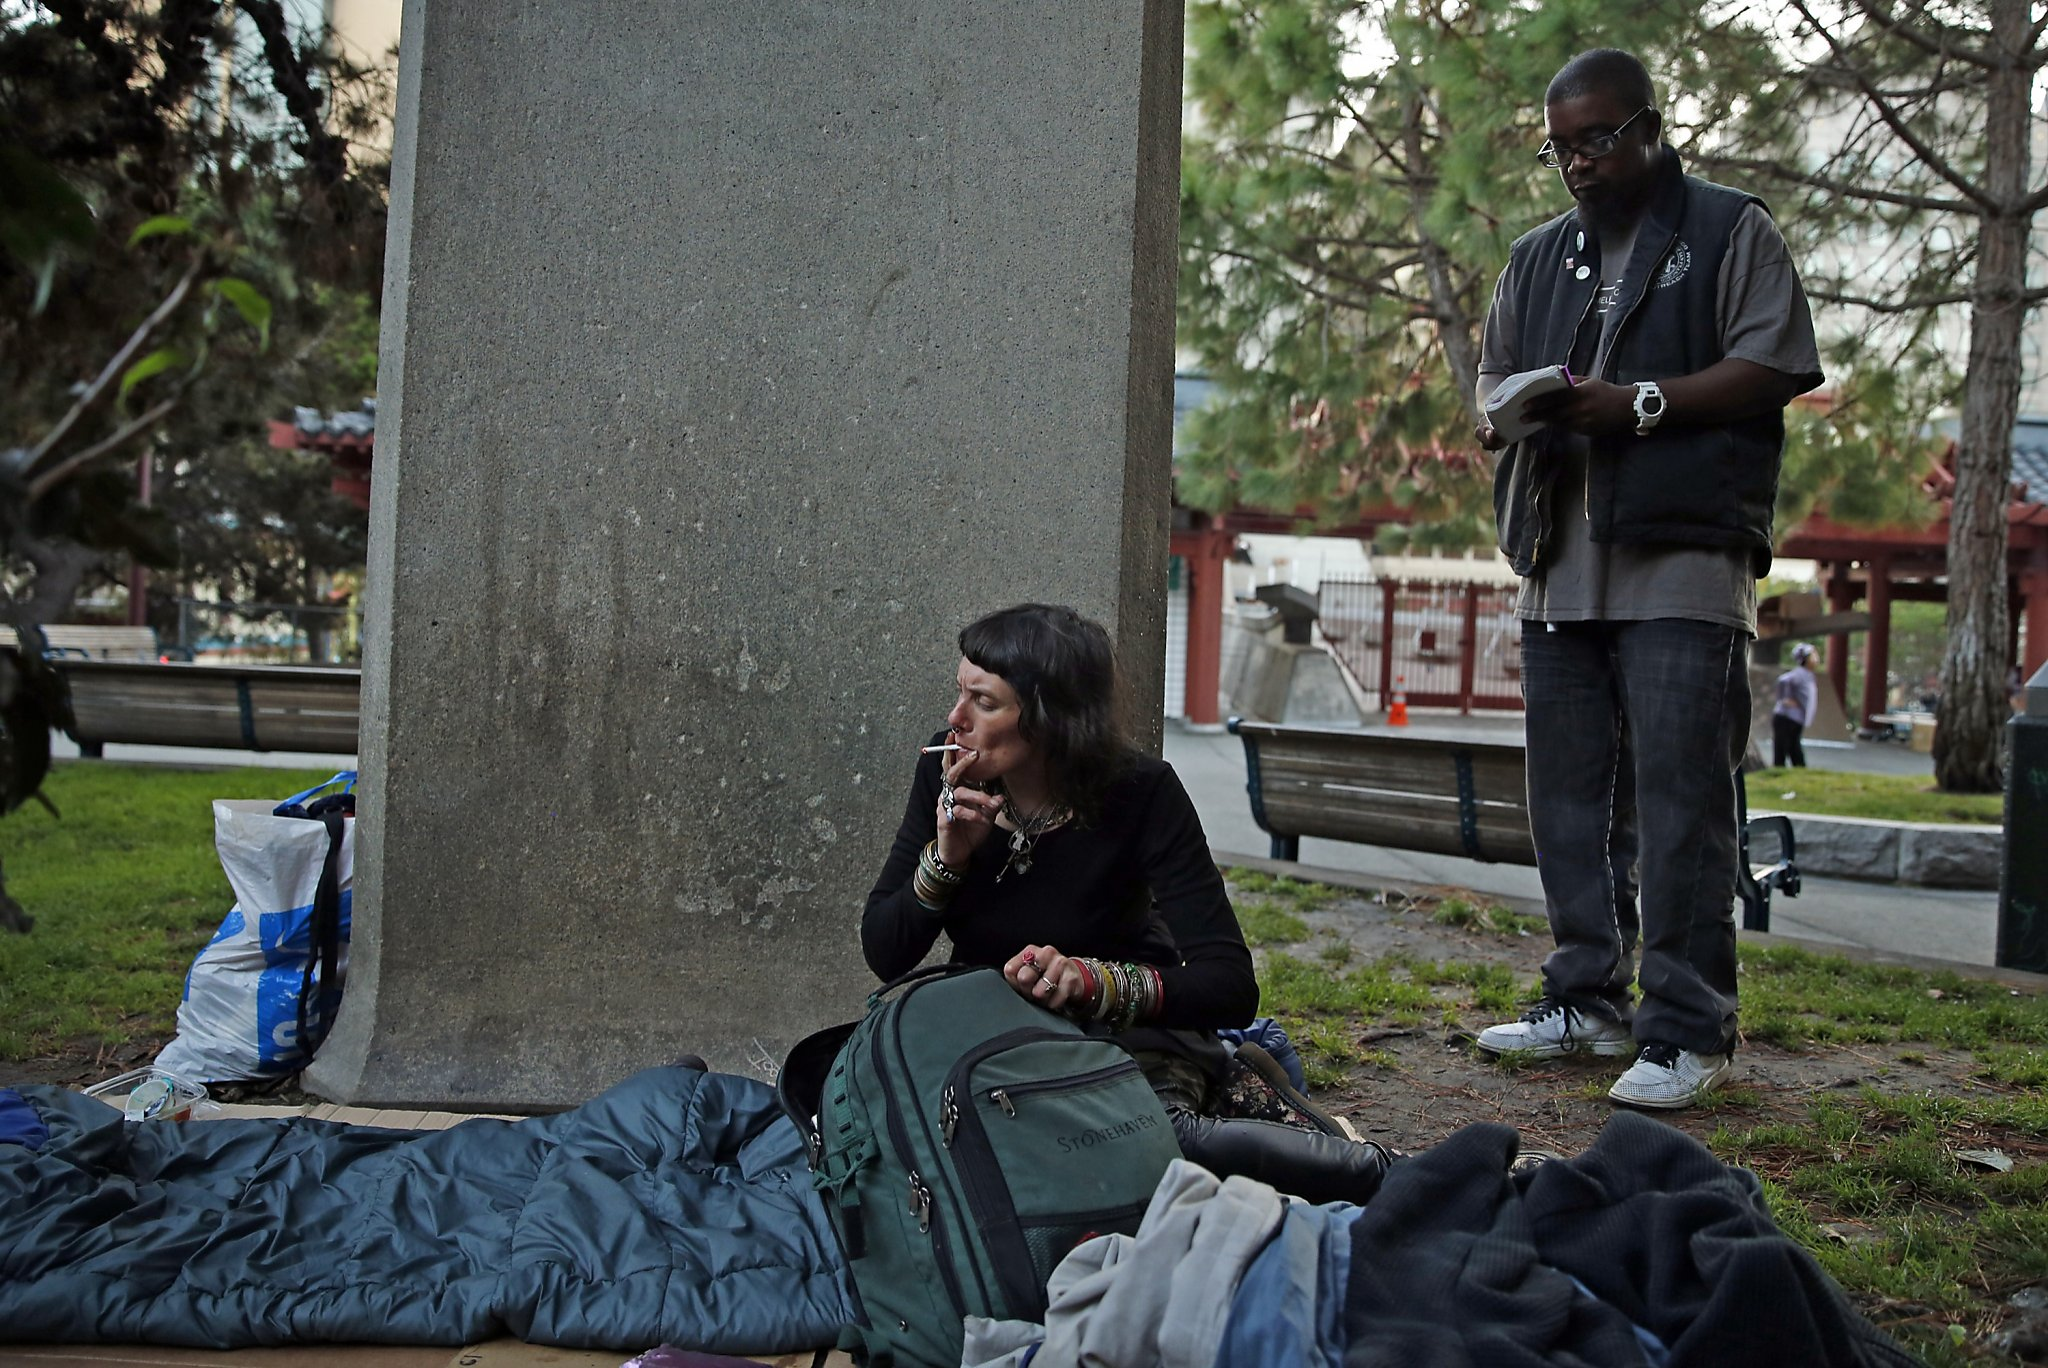 helping and hating the homeless The san francisco homeless population is one of the highest in the country, and perhaps the most visible when i first moved here, i would walk by an encampment, or someone sleeping on the street, and my heart would bleed for them.